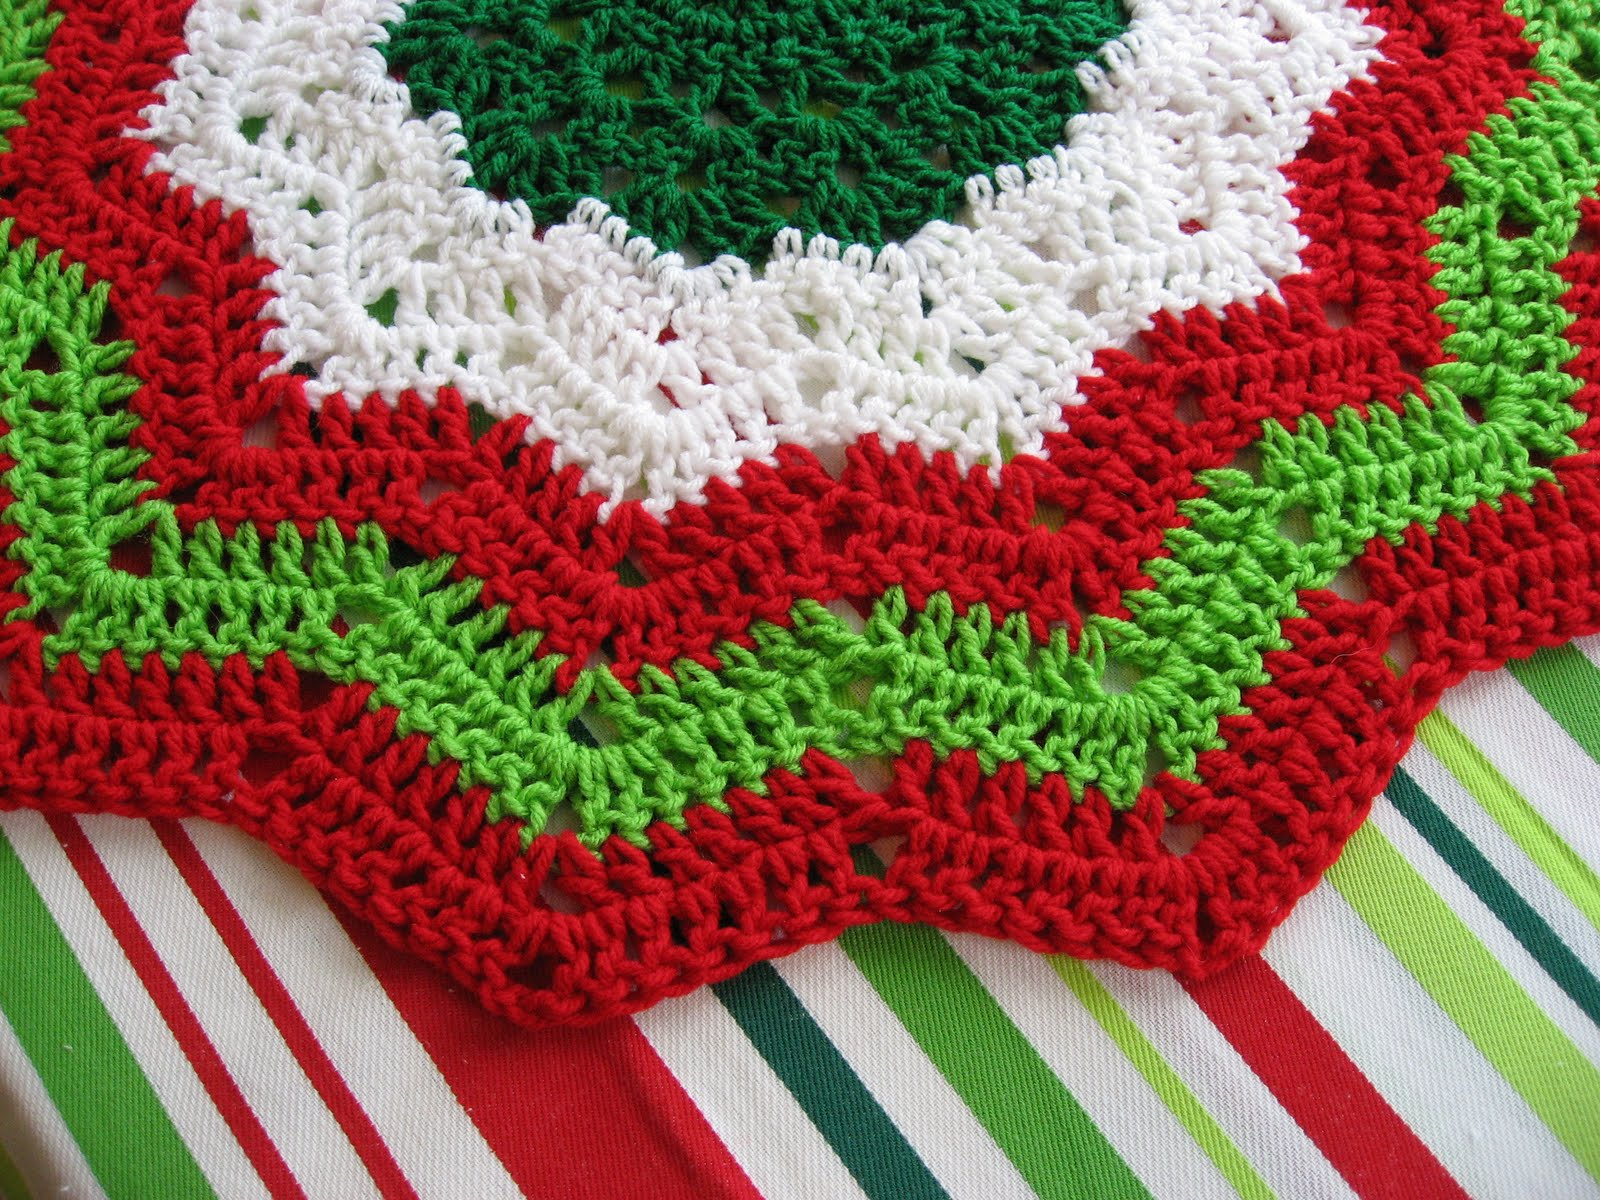 Christmas Afghan Crochet Pattern ? Crochet Club